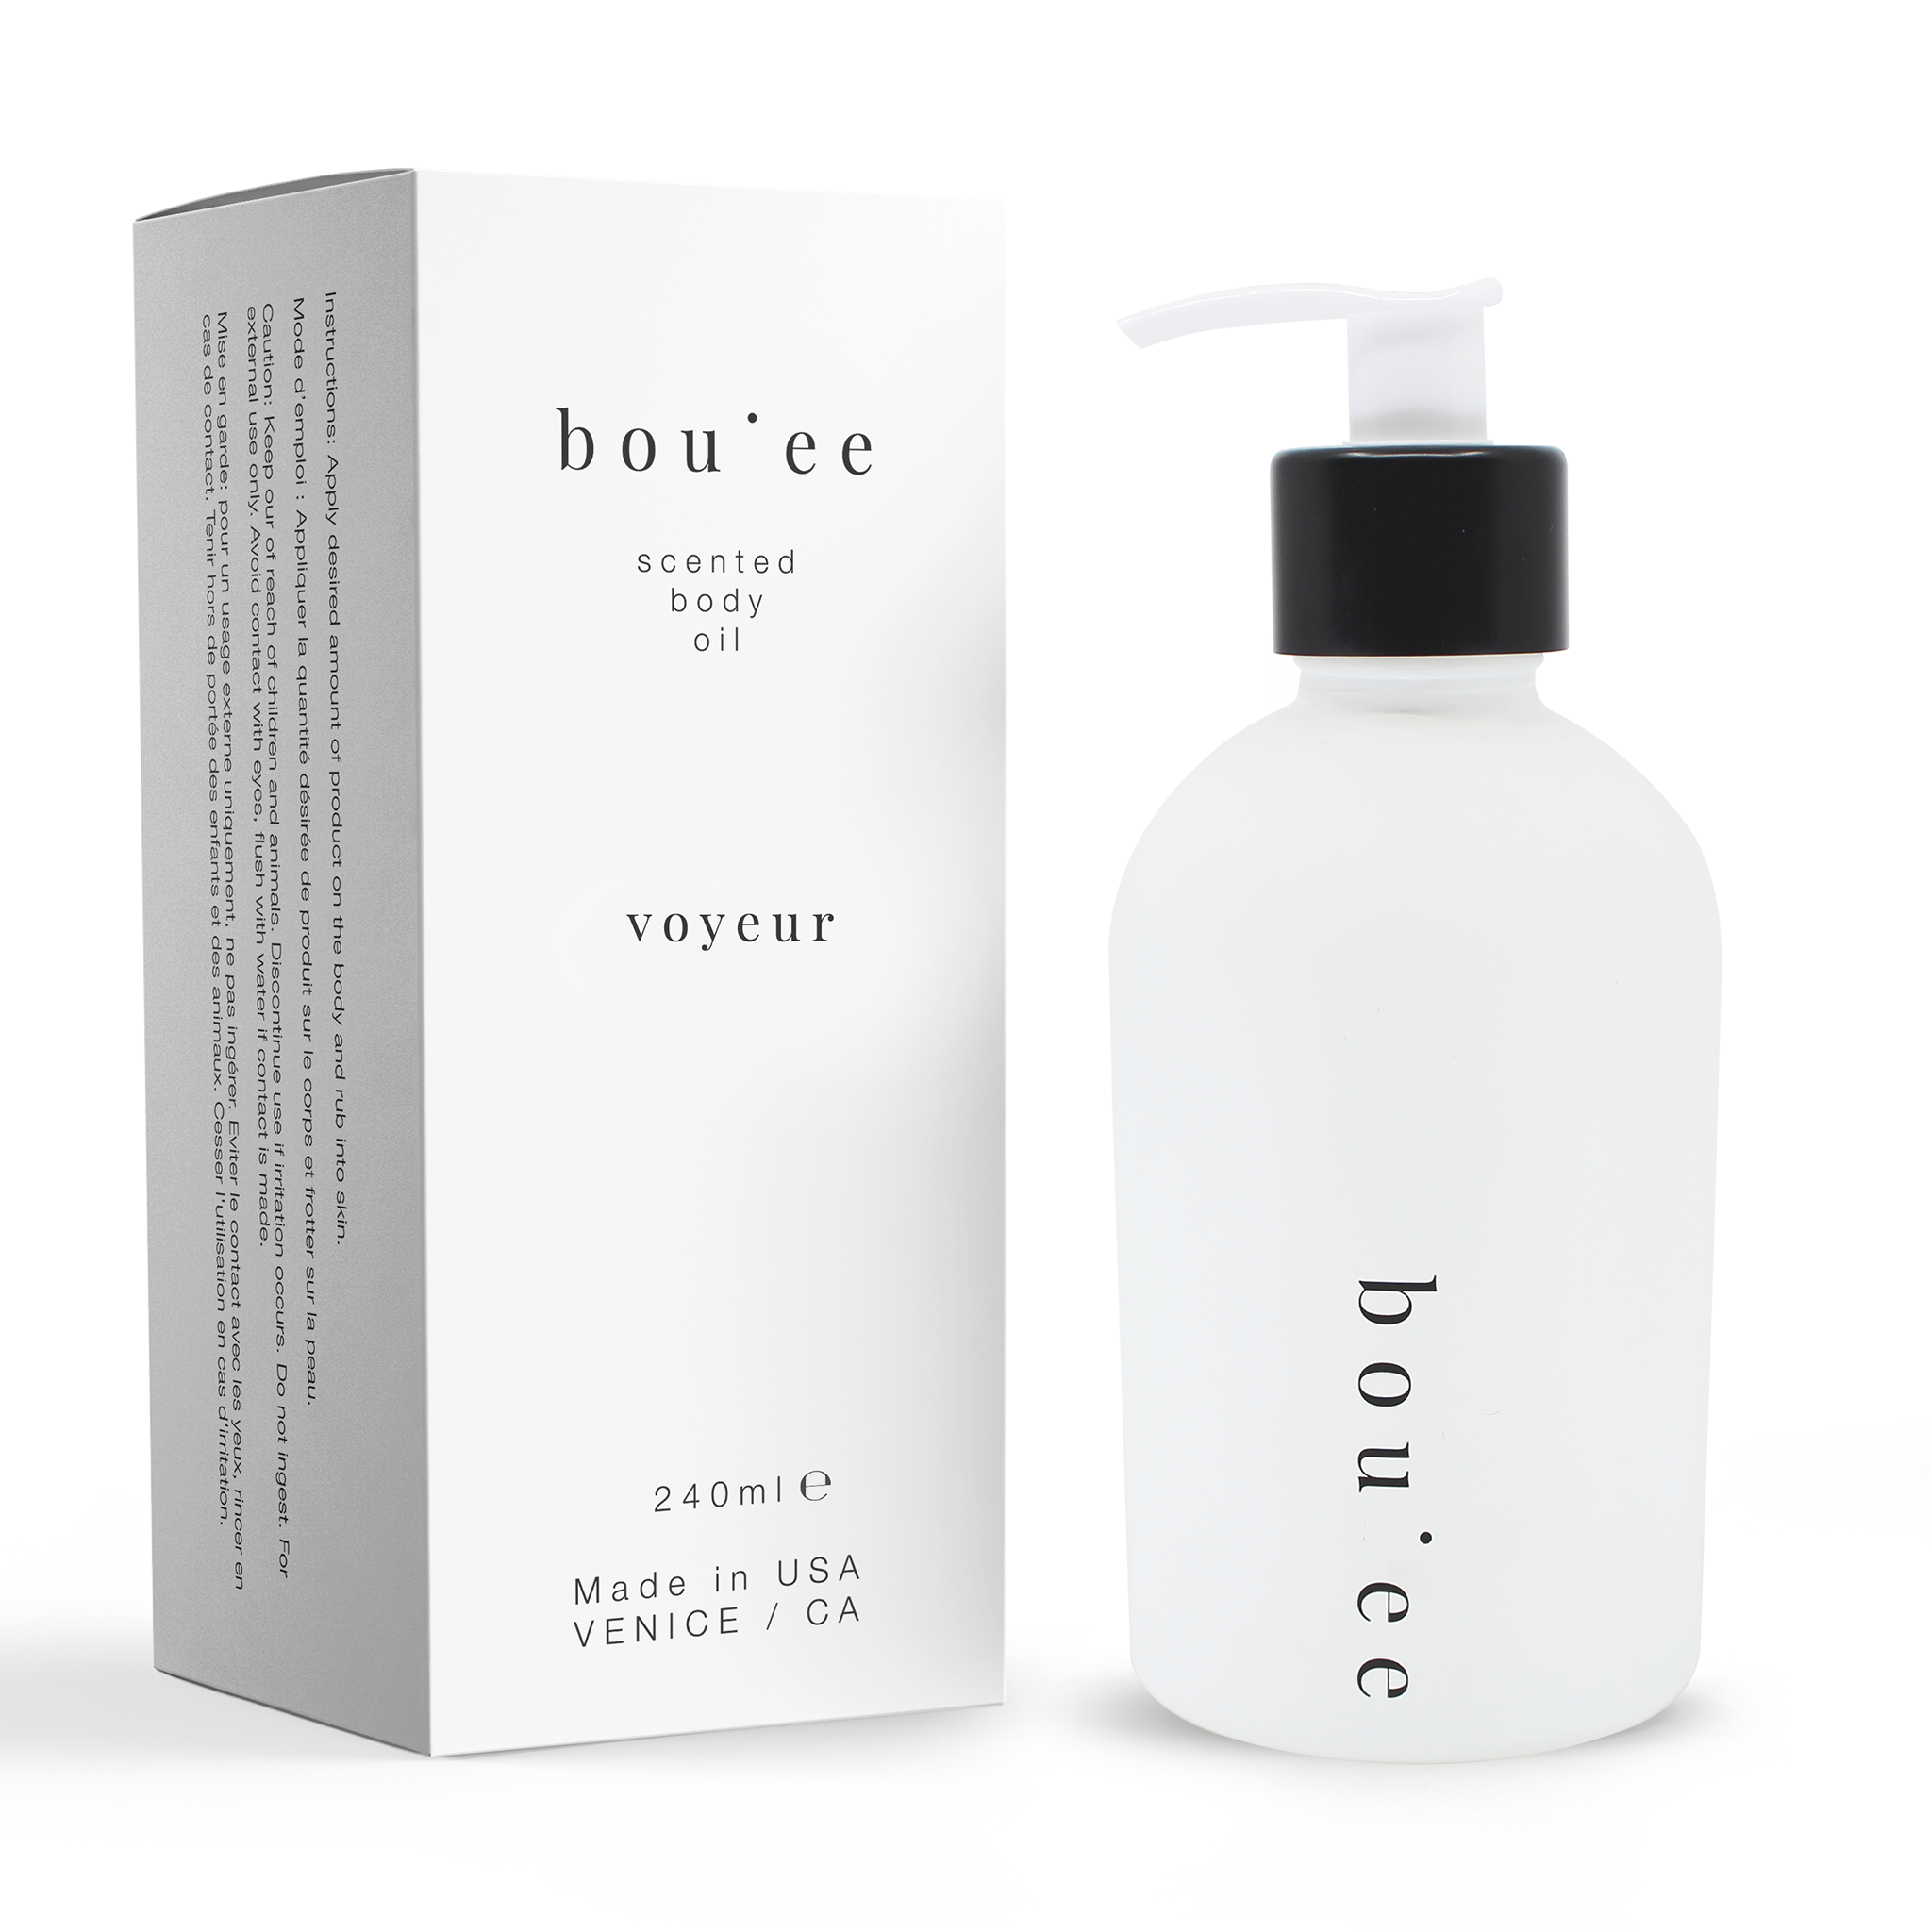 Voyeur / Boujee Body Oil / 240ml